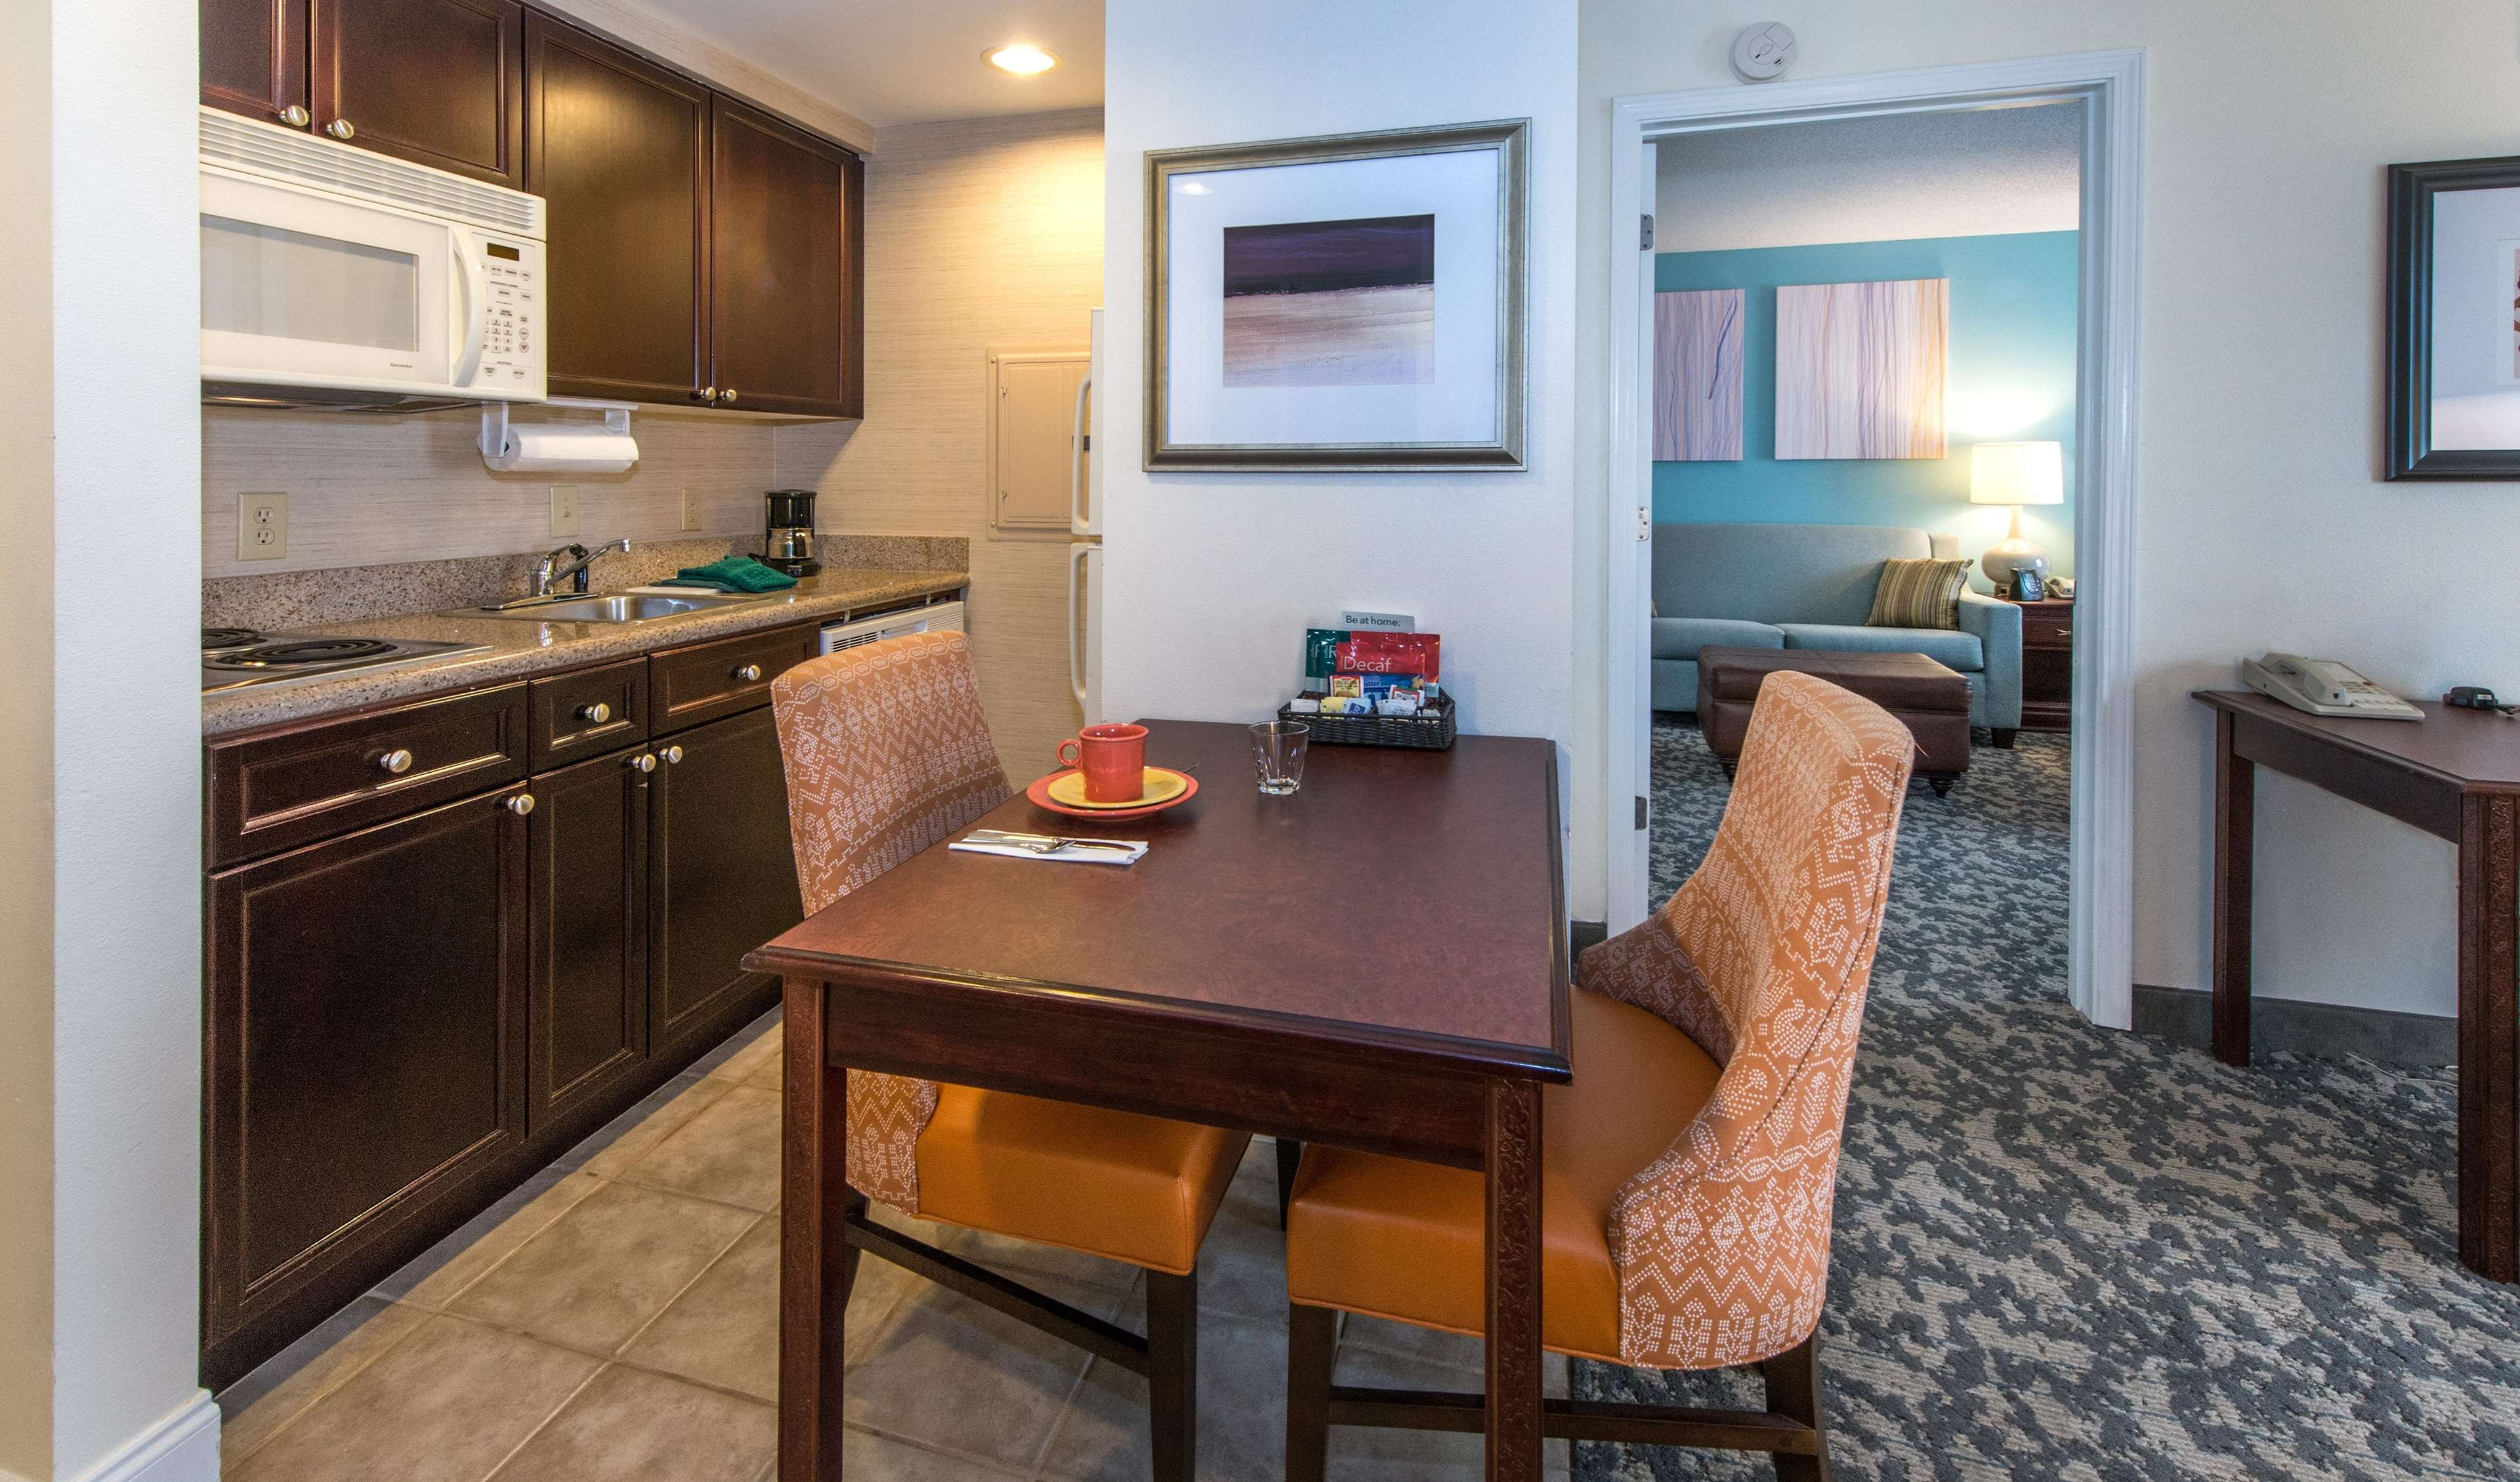 Homewood Suites by Hilton Montgomery image 19